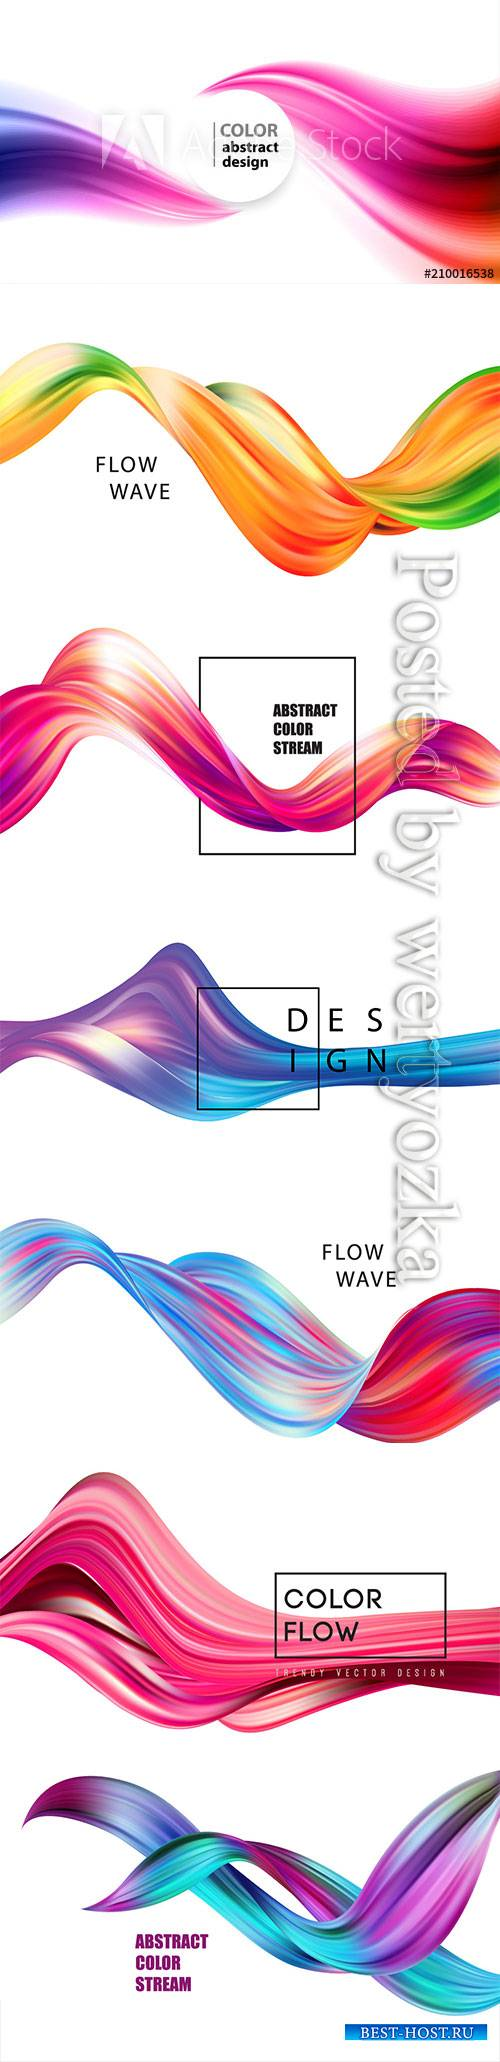 Abstract colorful vector background, color flow liquid wave for design